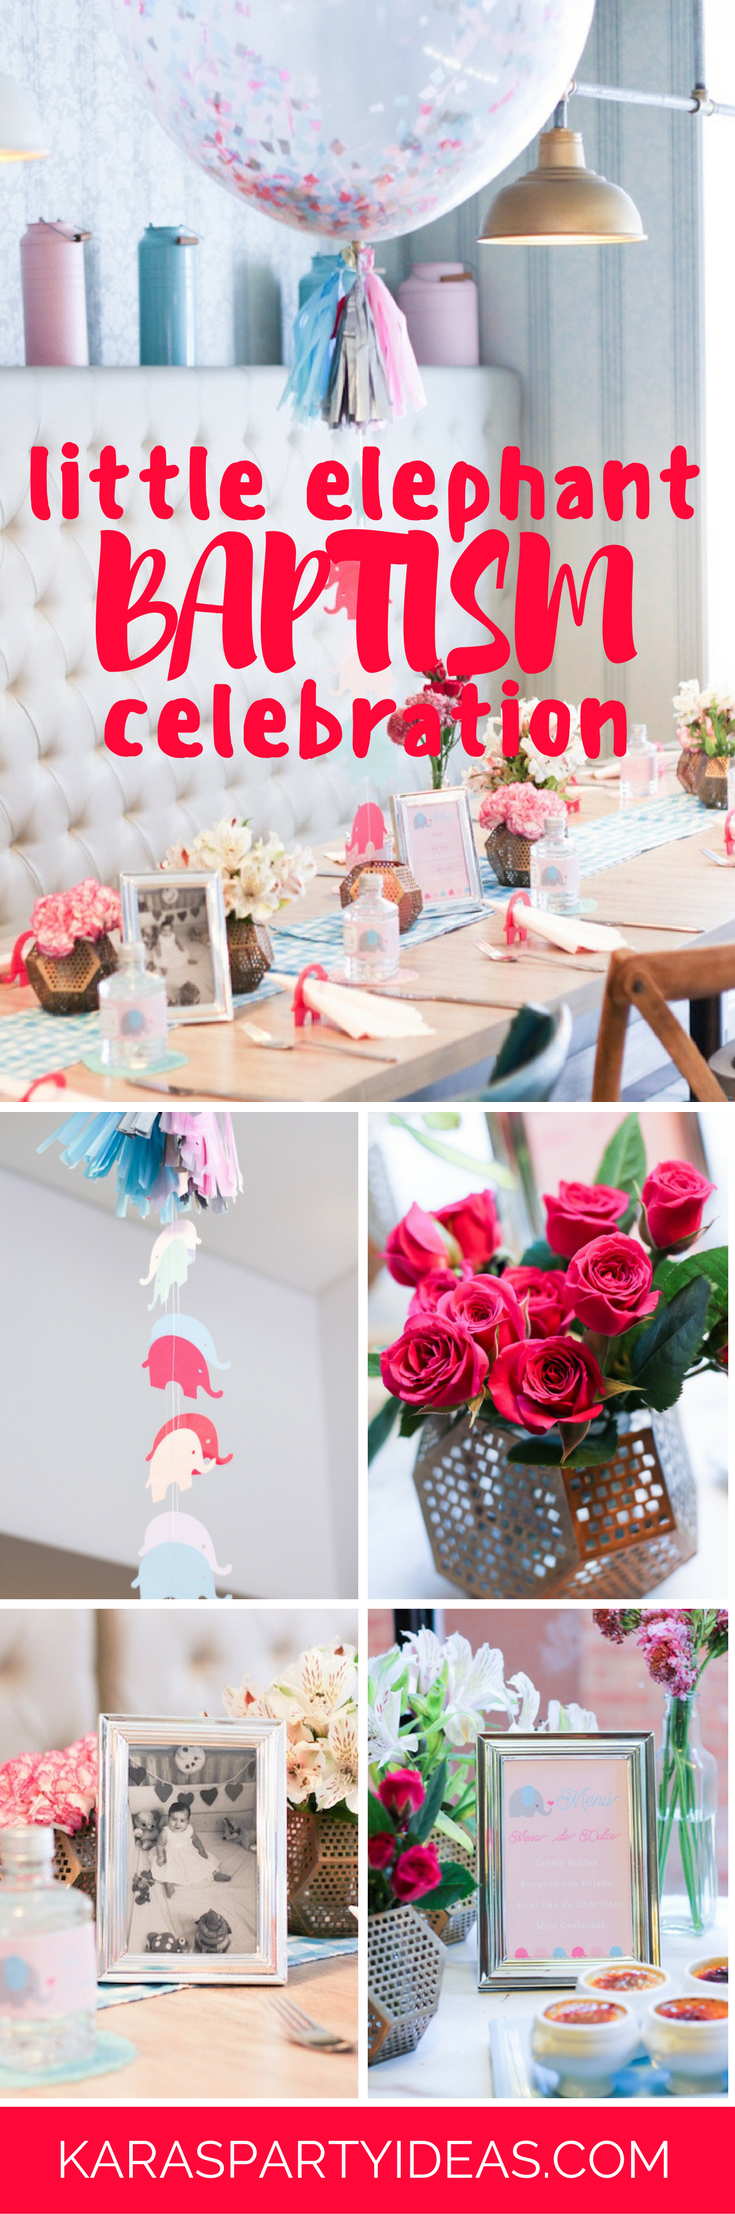 Little Elephant Baptism Celebration via Kara's Party Ideas - KarasPartyIdeas.com